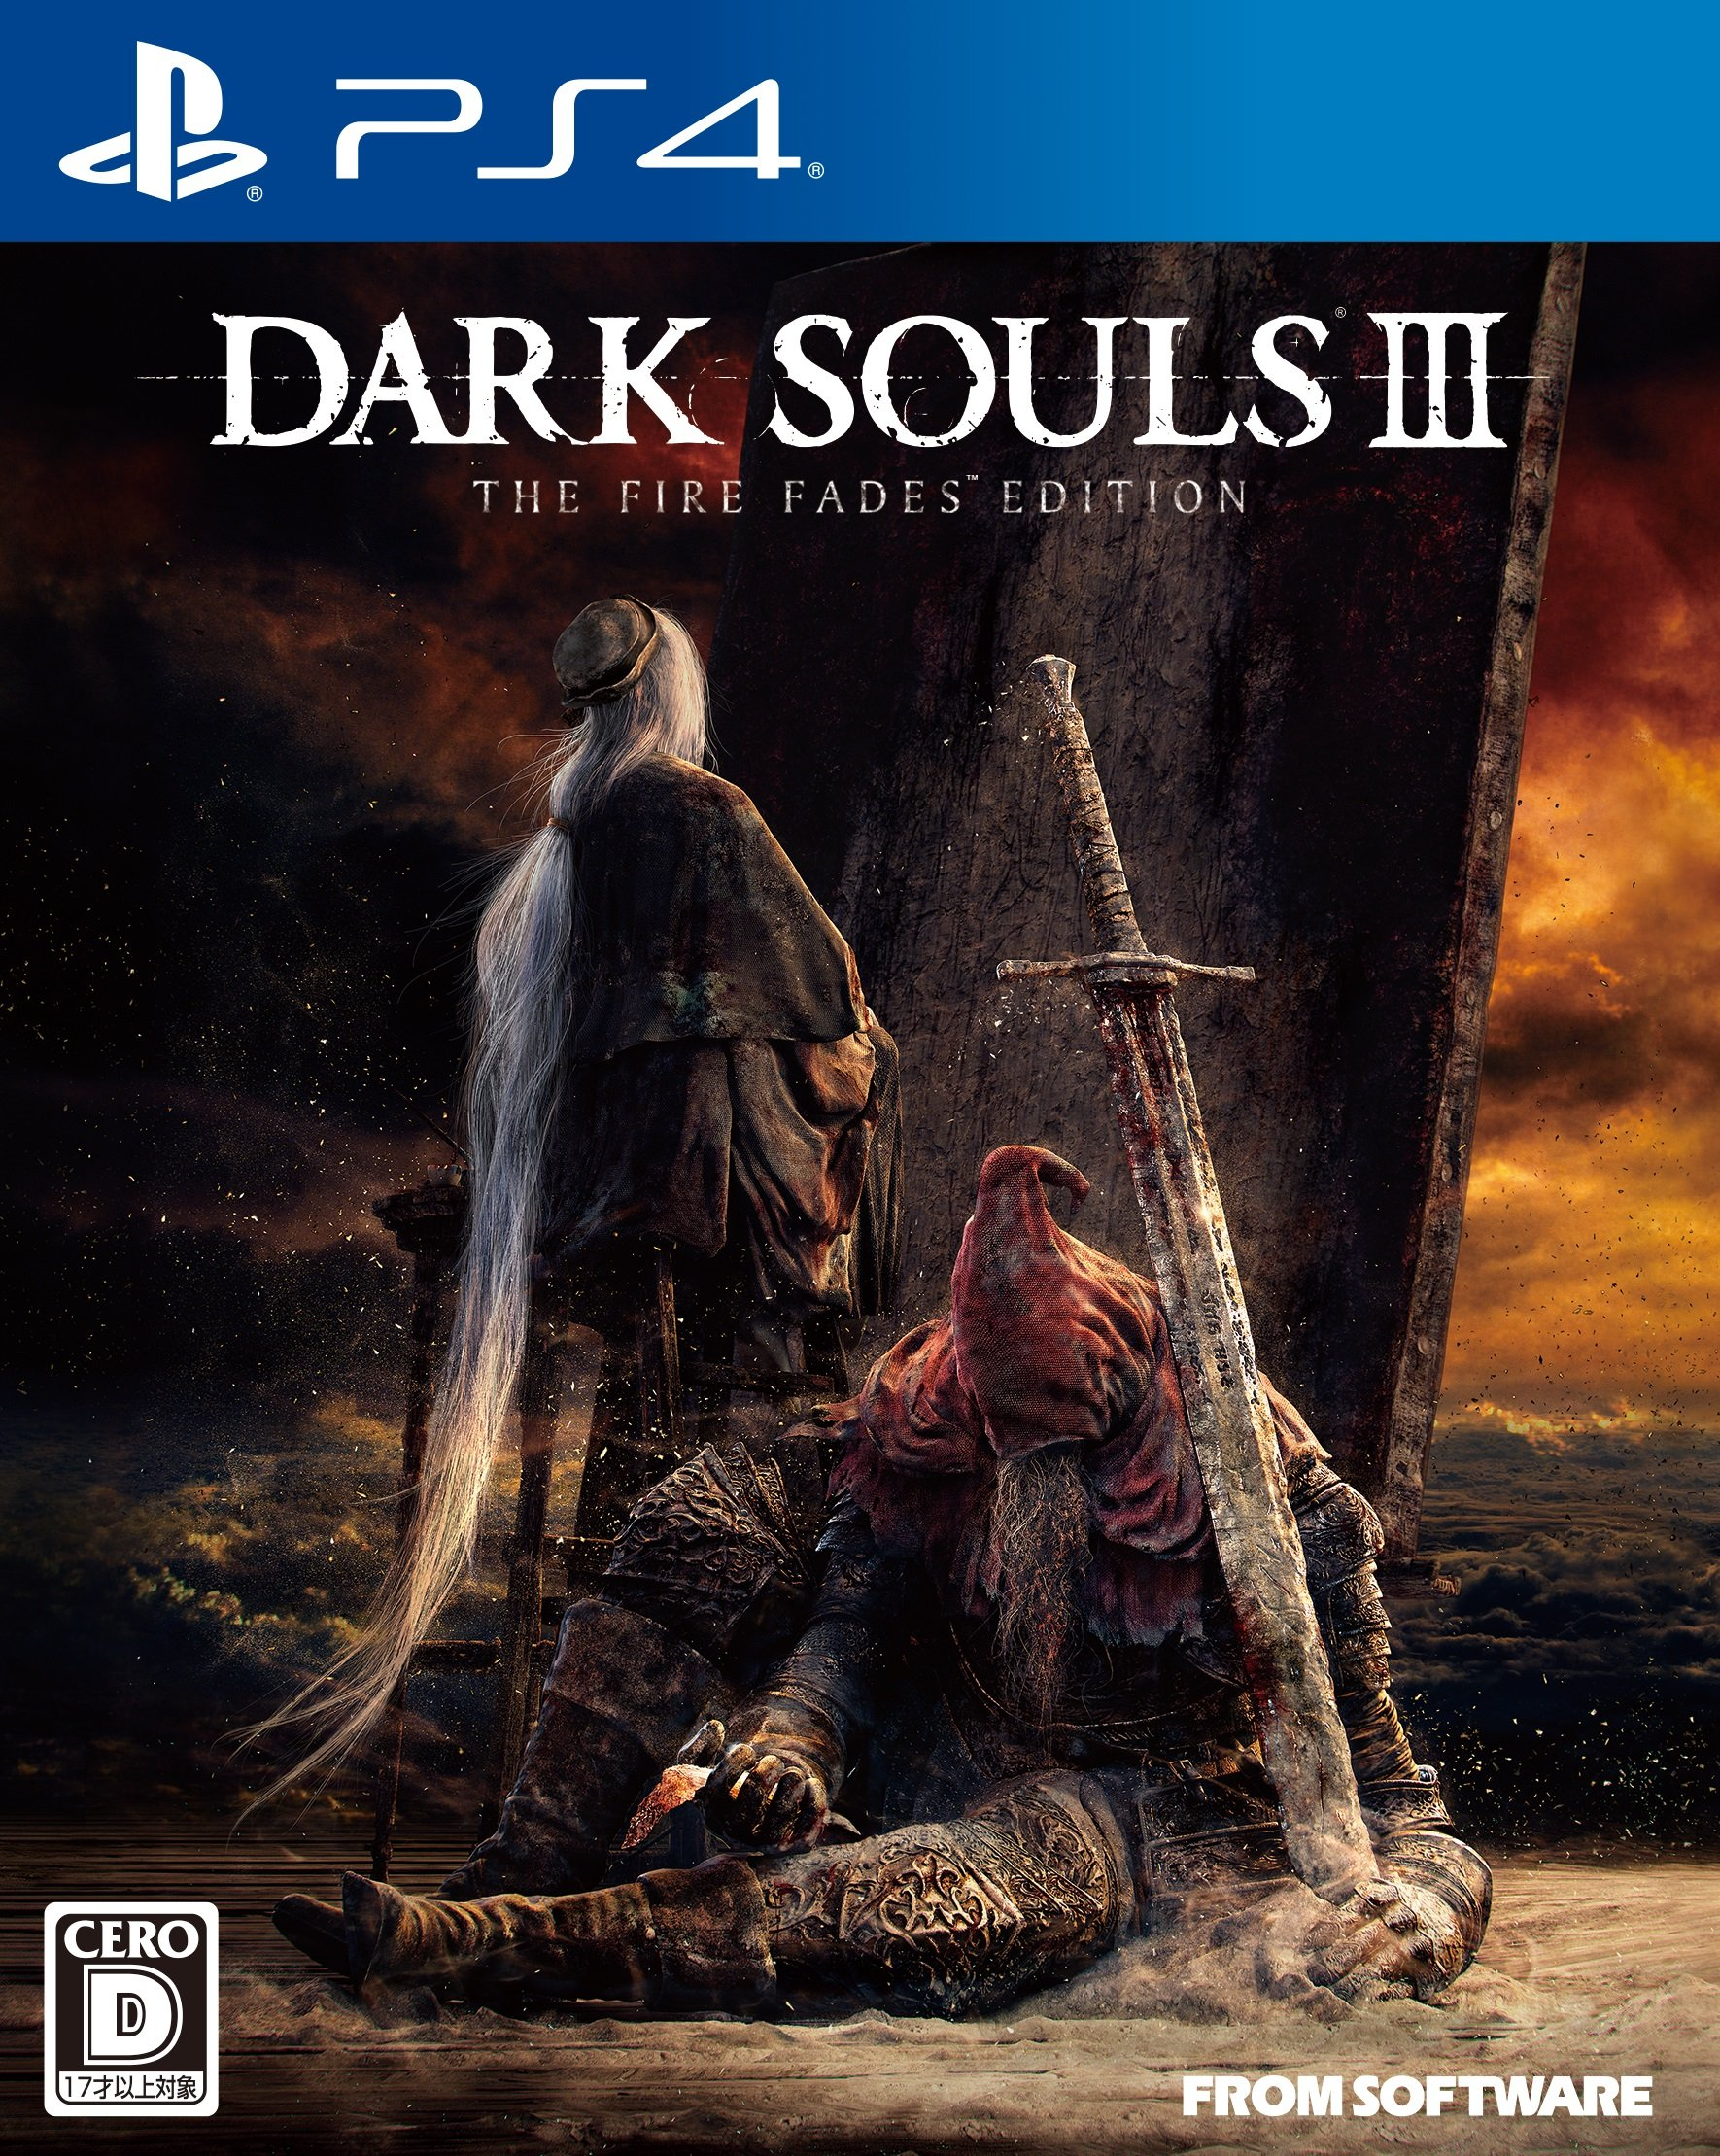 DARK SOULS III THE FIRE FADES EDITION (「数量限定特典」ダークソウルIII 公式コンプリートガイド プロローグ 特製マップ&オリジナルサウンドトラック 同梱)